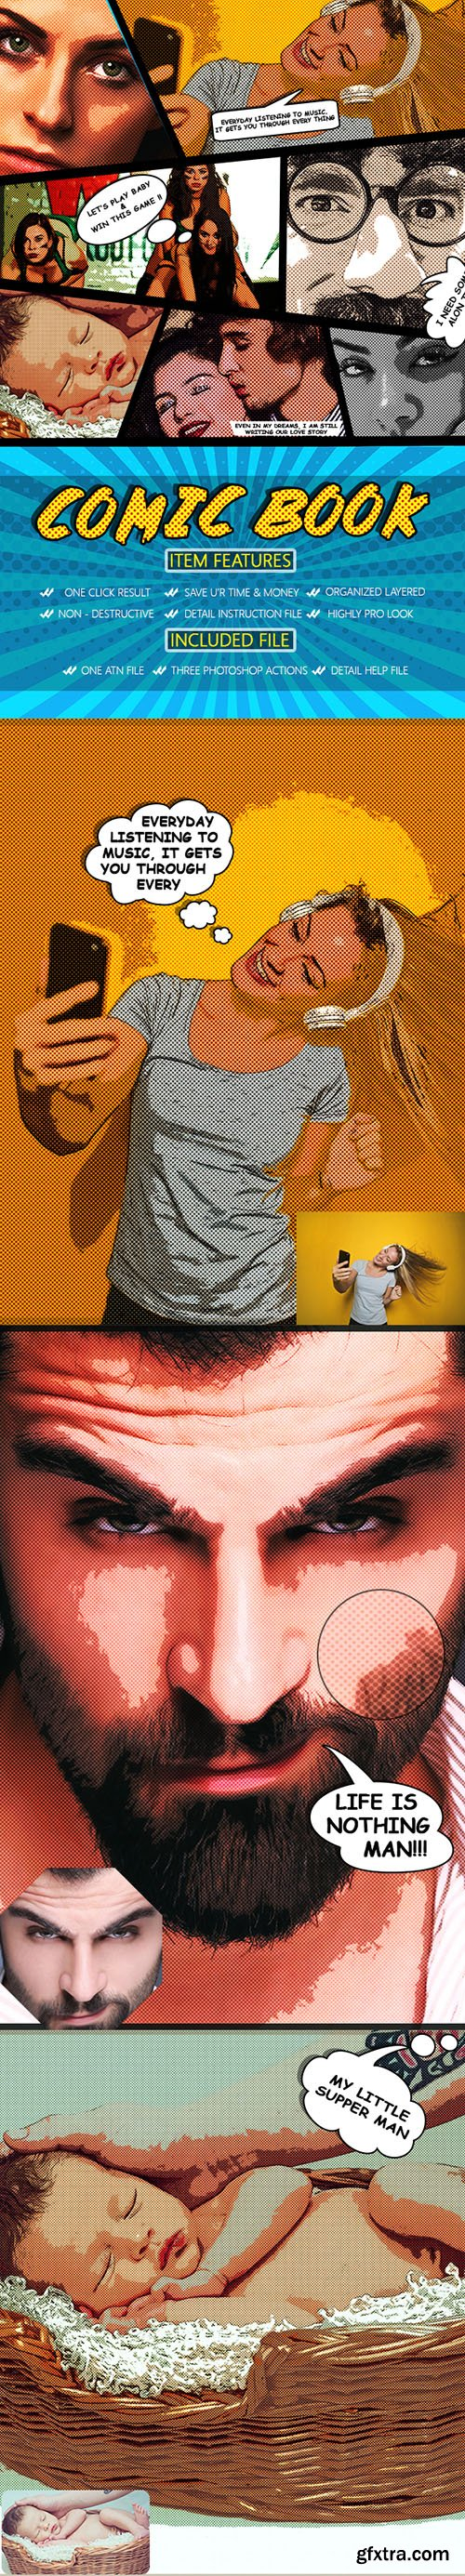 Graphicriver Comic Book Photoshop Action 22908999